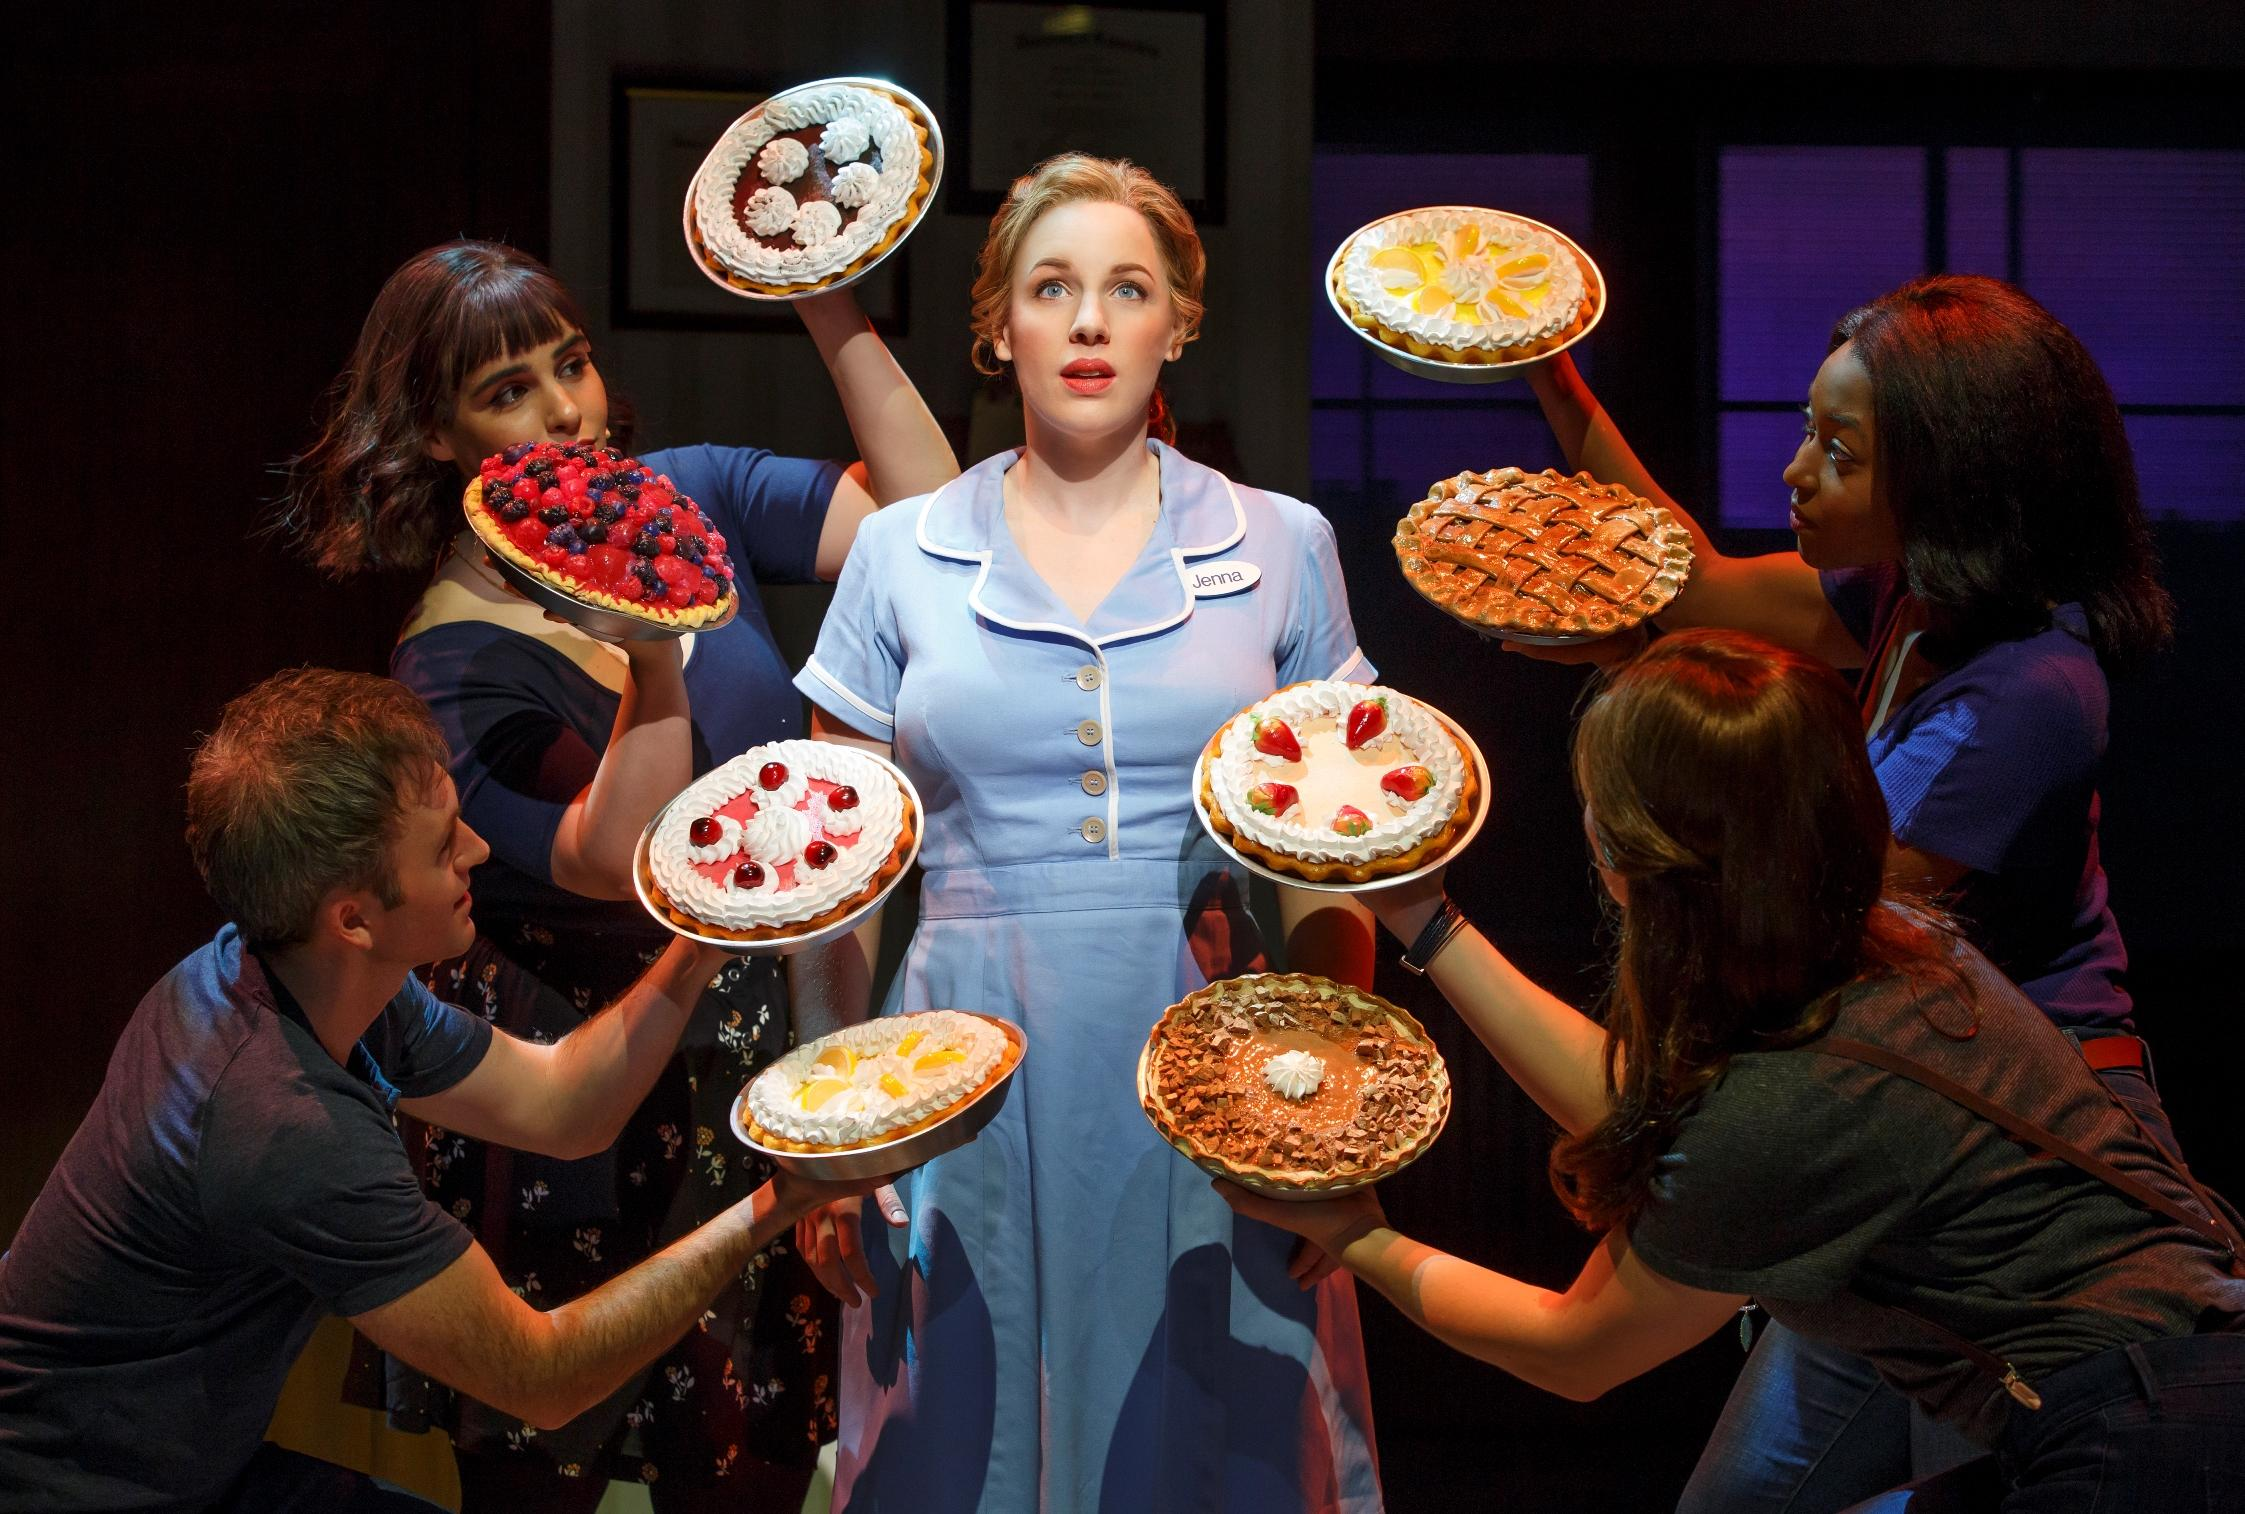 the-original-broadway-production-of-waitress-photographer-joan-marcus-3.jpg